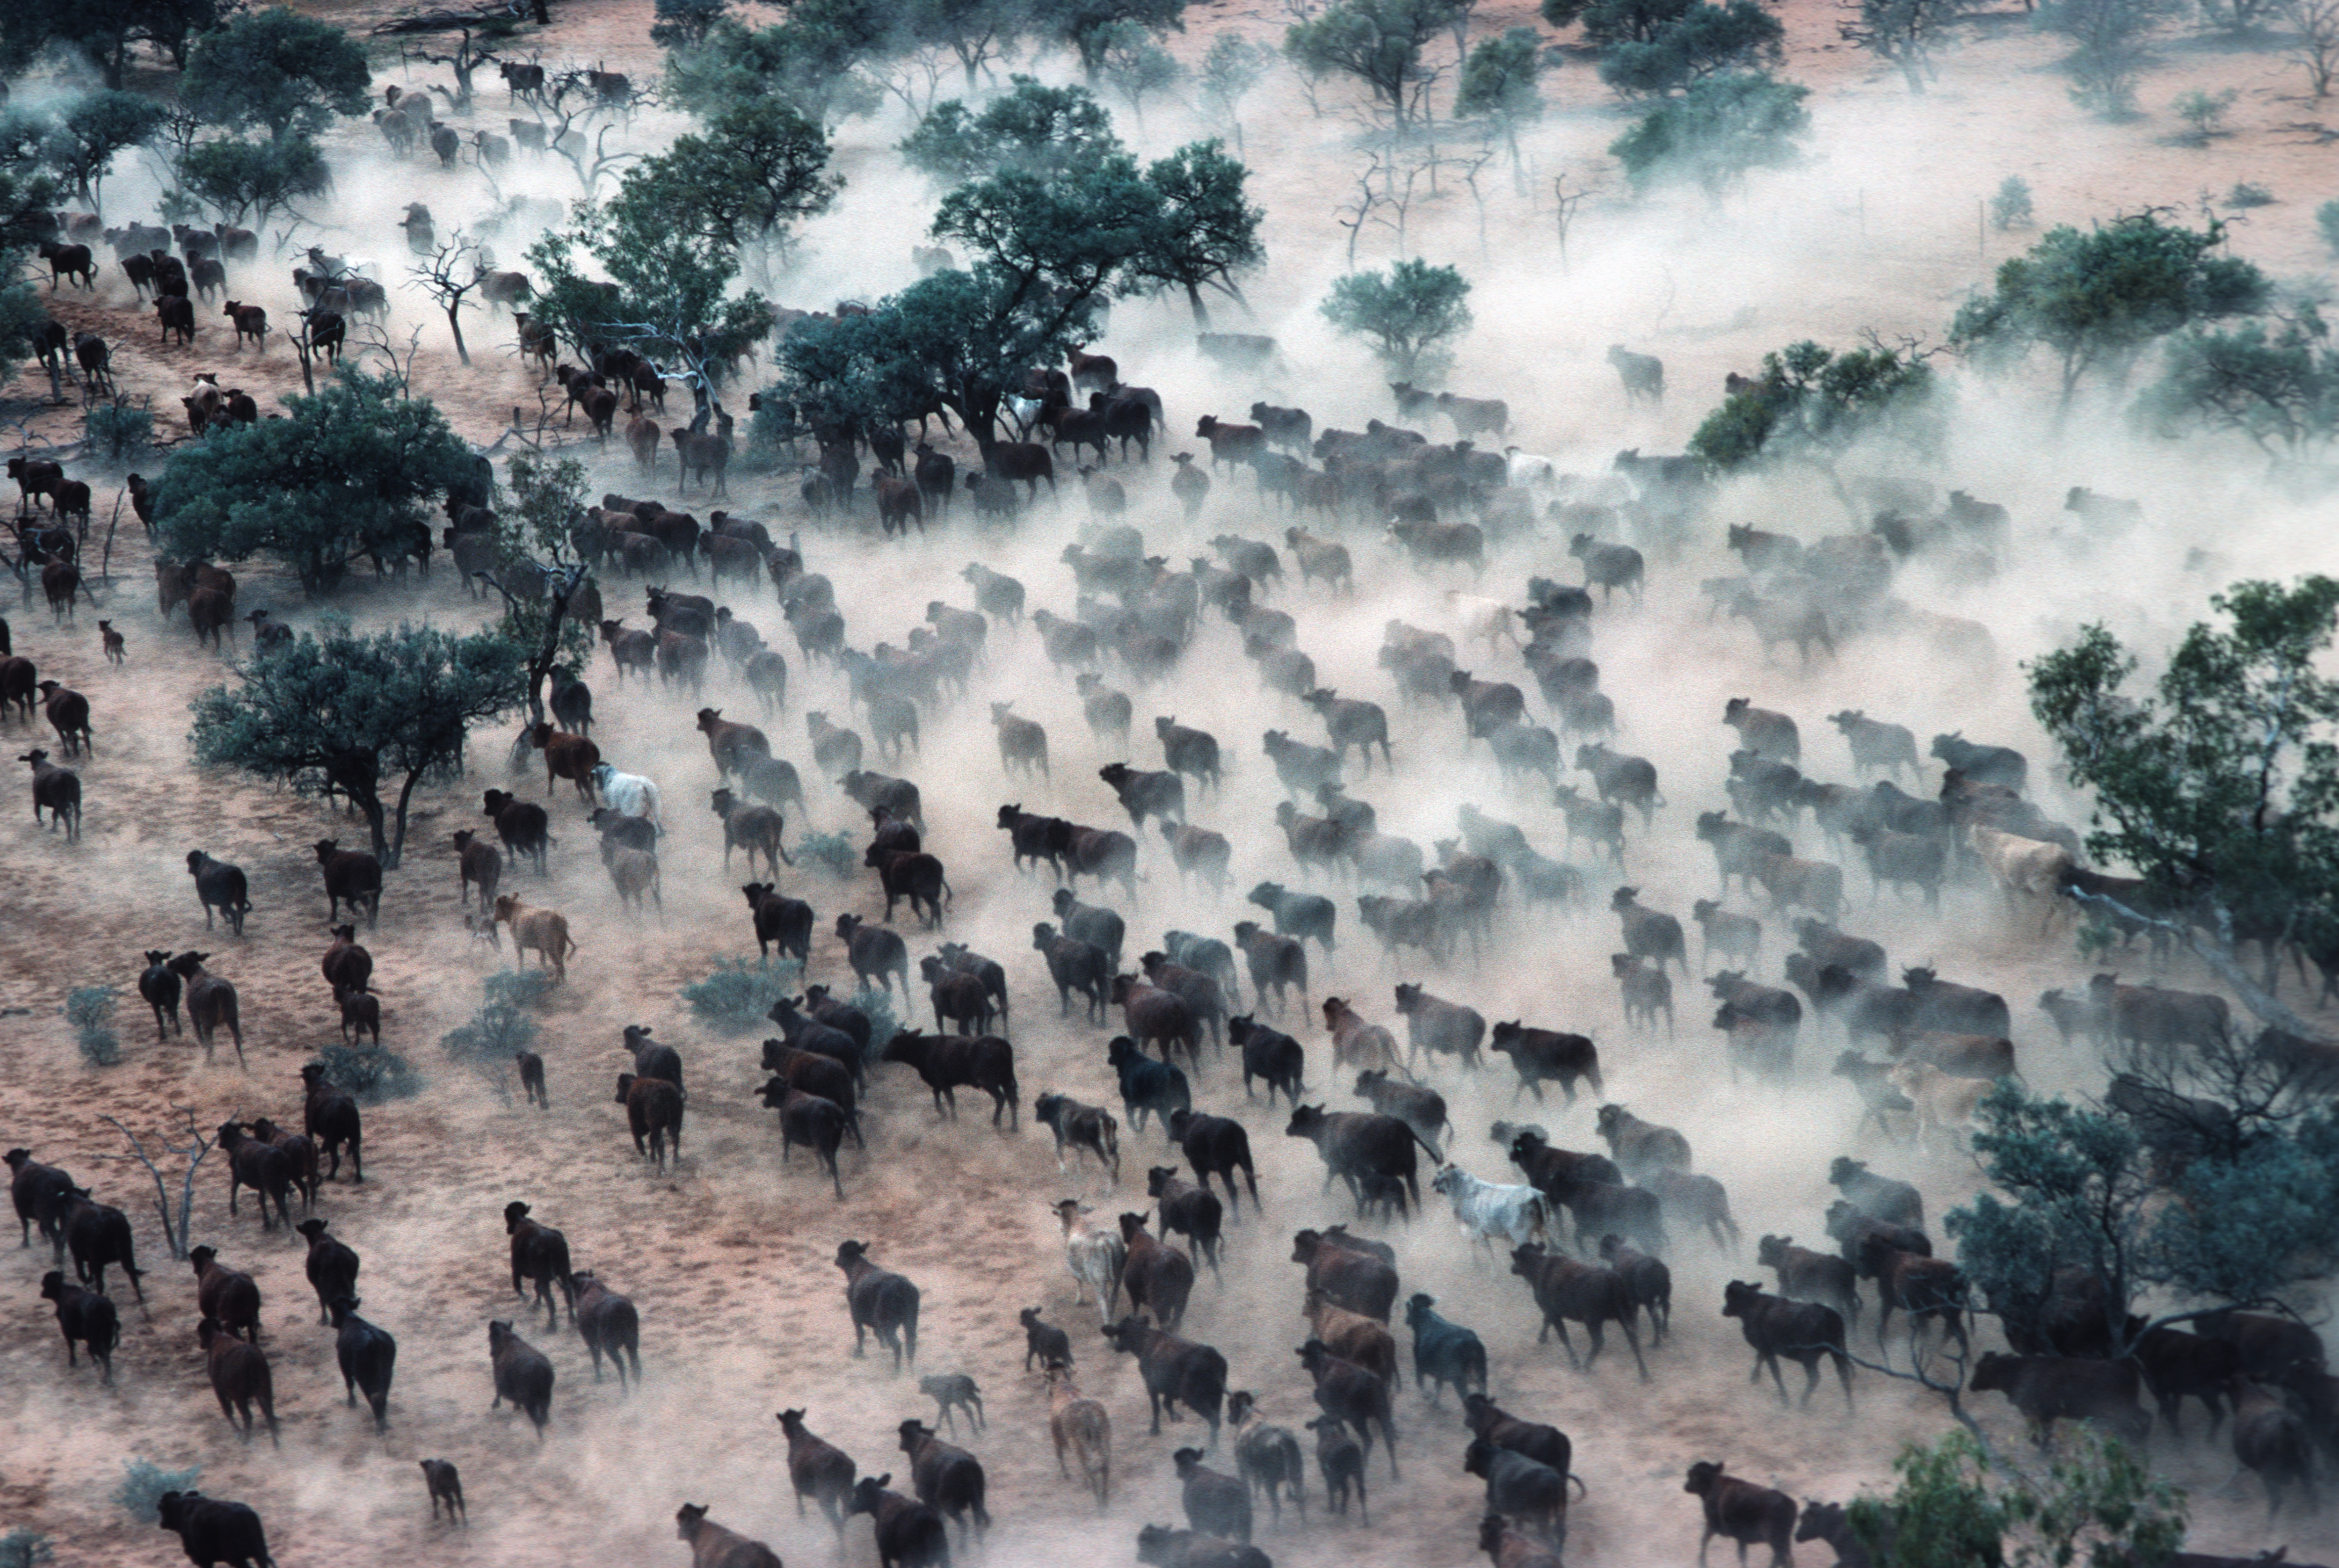 Aerial scene of a cattle station or ranch in outback Australia with a cowboy on horseback herding and rounding up cows across the desert plains and into huge cattle pens.